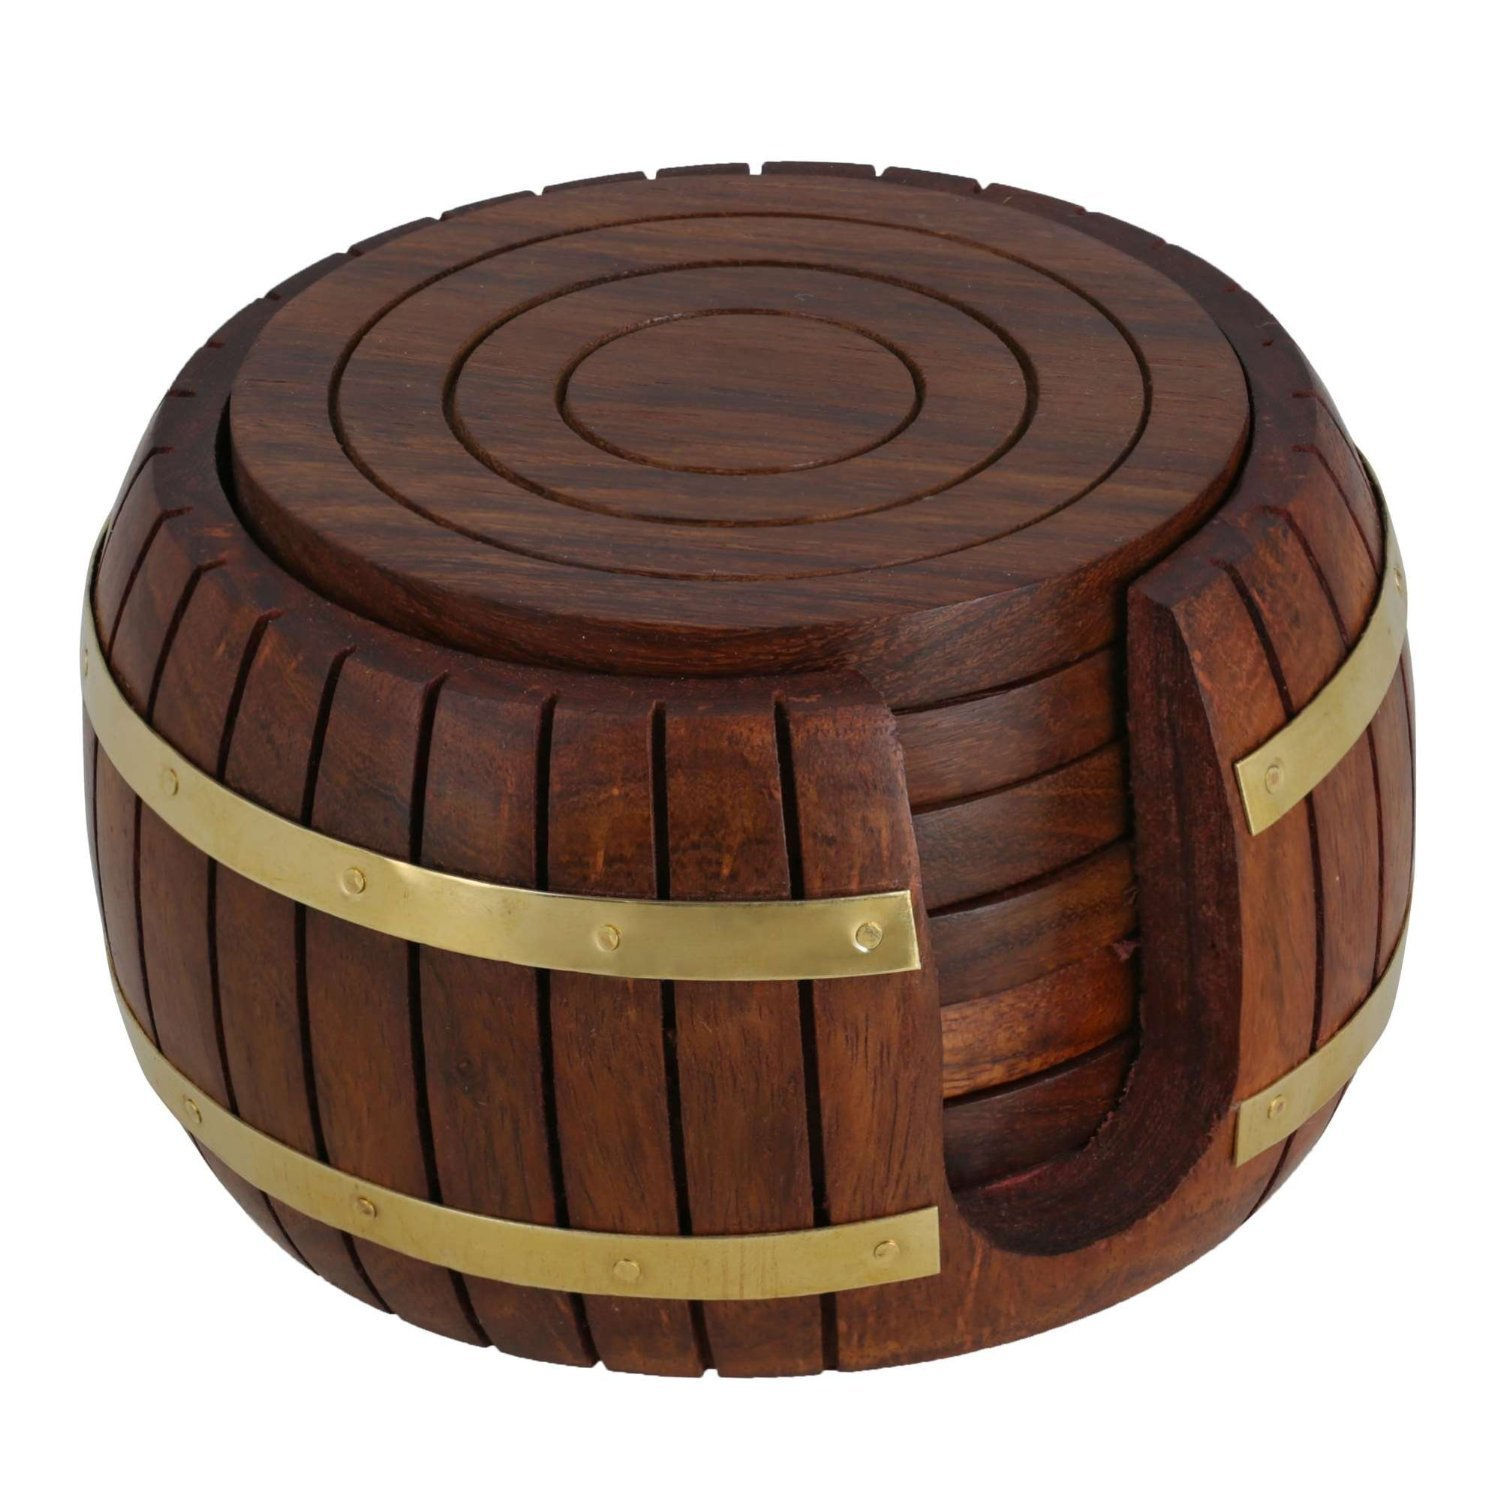 WhopperIndia Handmade Set of 6 Wooden Coasters for Drink Tea Coffee Table Barrel Coaster with Holder Stand Dining Home Decor